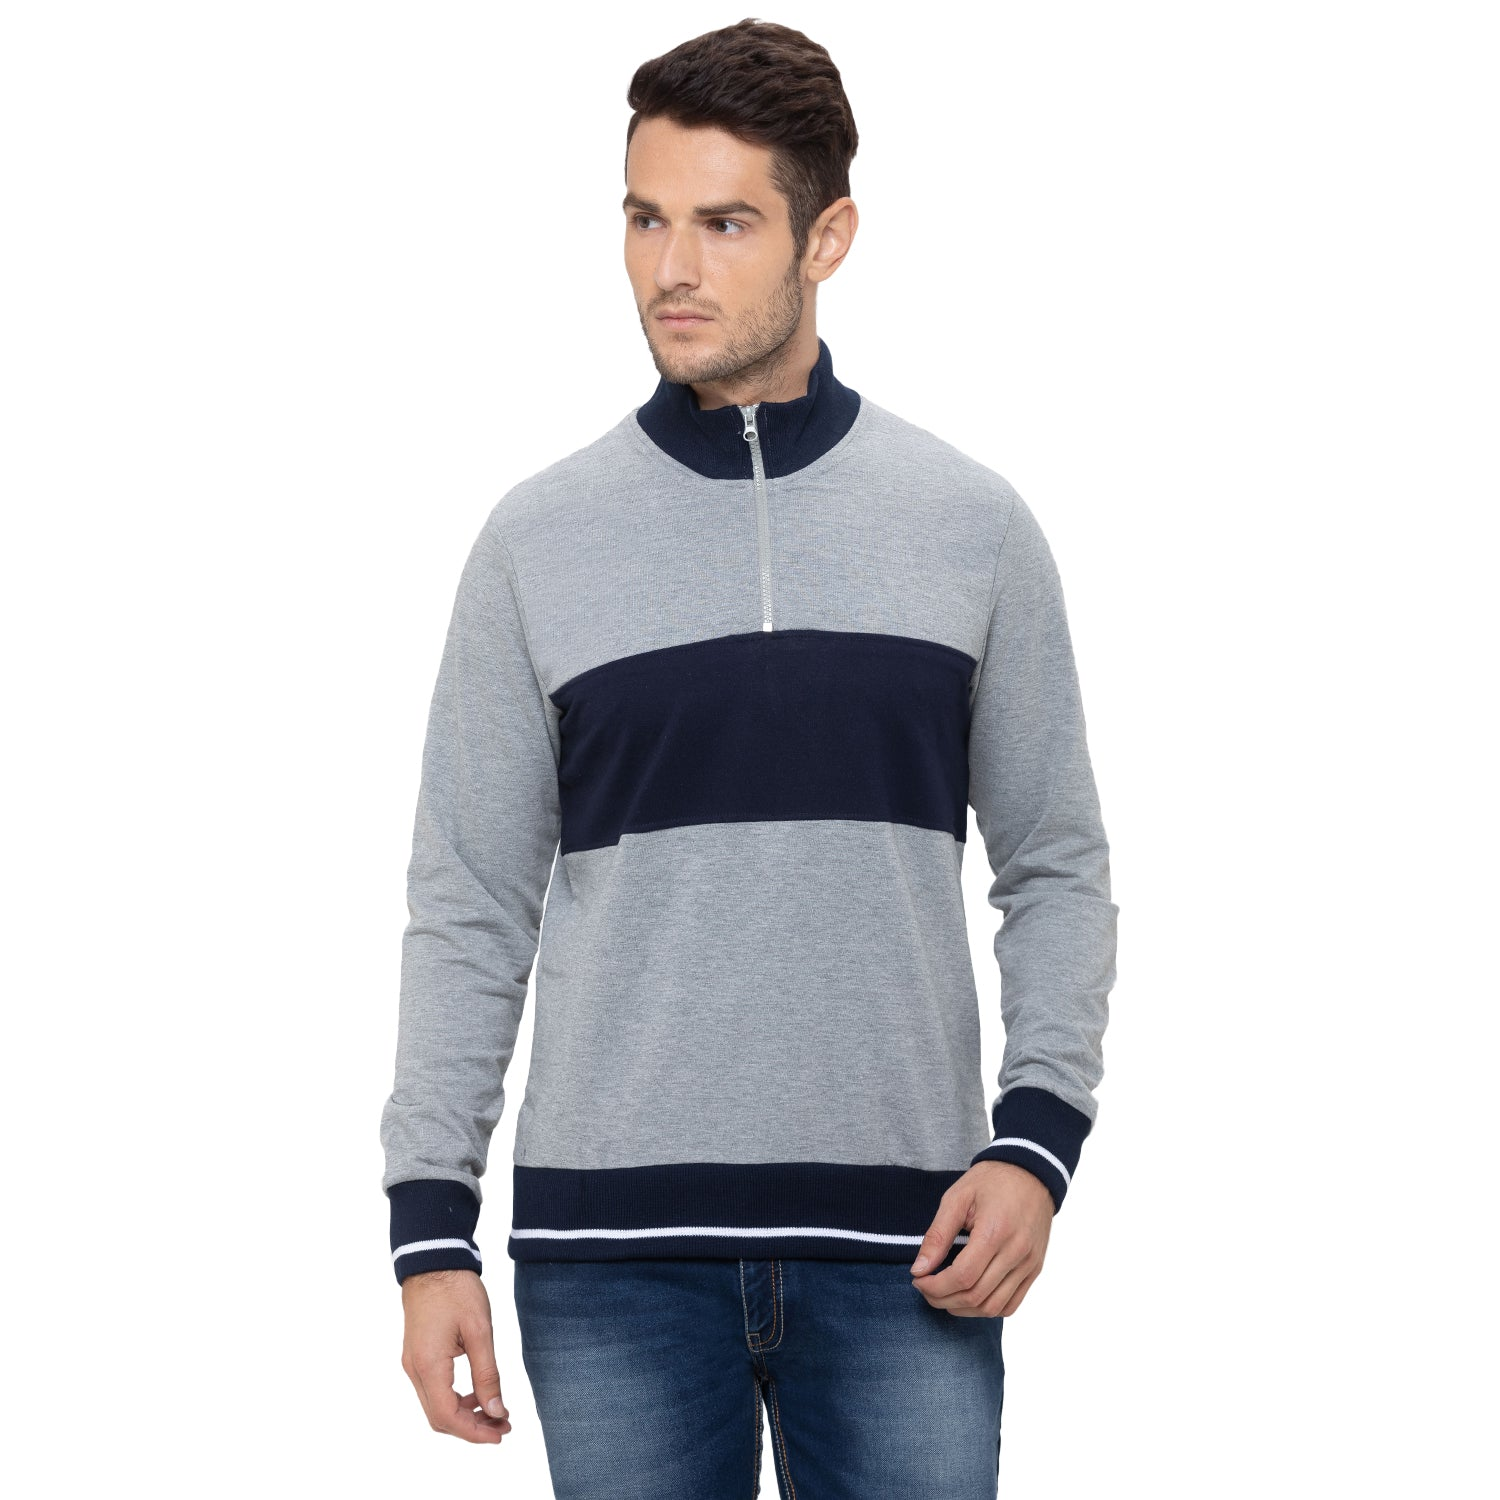 Globus Grey Striped Sweatshirt-1